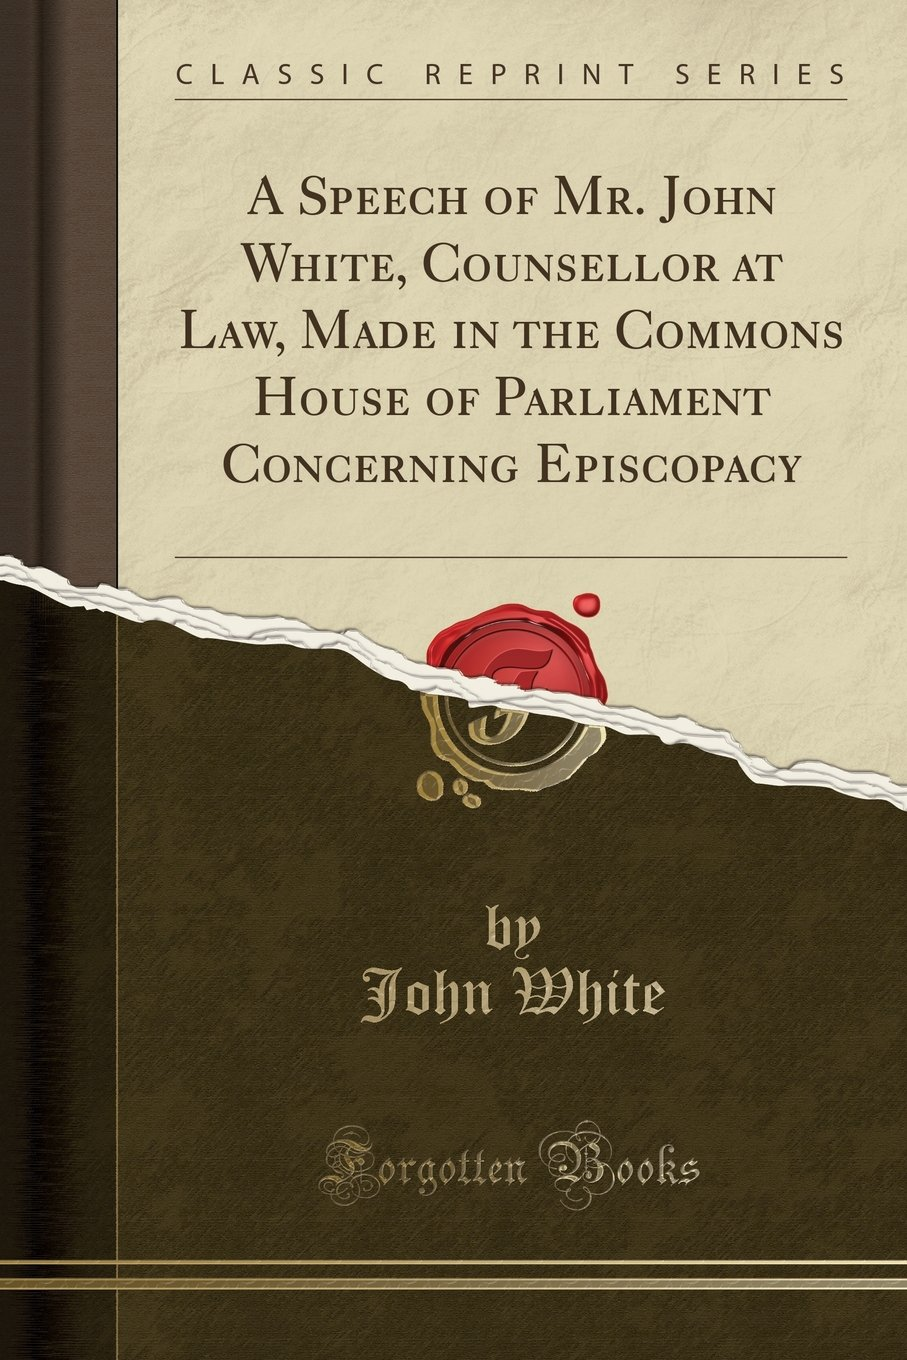 A Speech of Mr. John White, Counsellor at Law, Made in the Commons House of Parliament Concerning Episcopacy (Classic Reprint) pdf epub